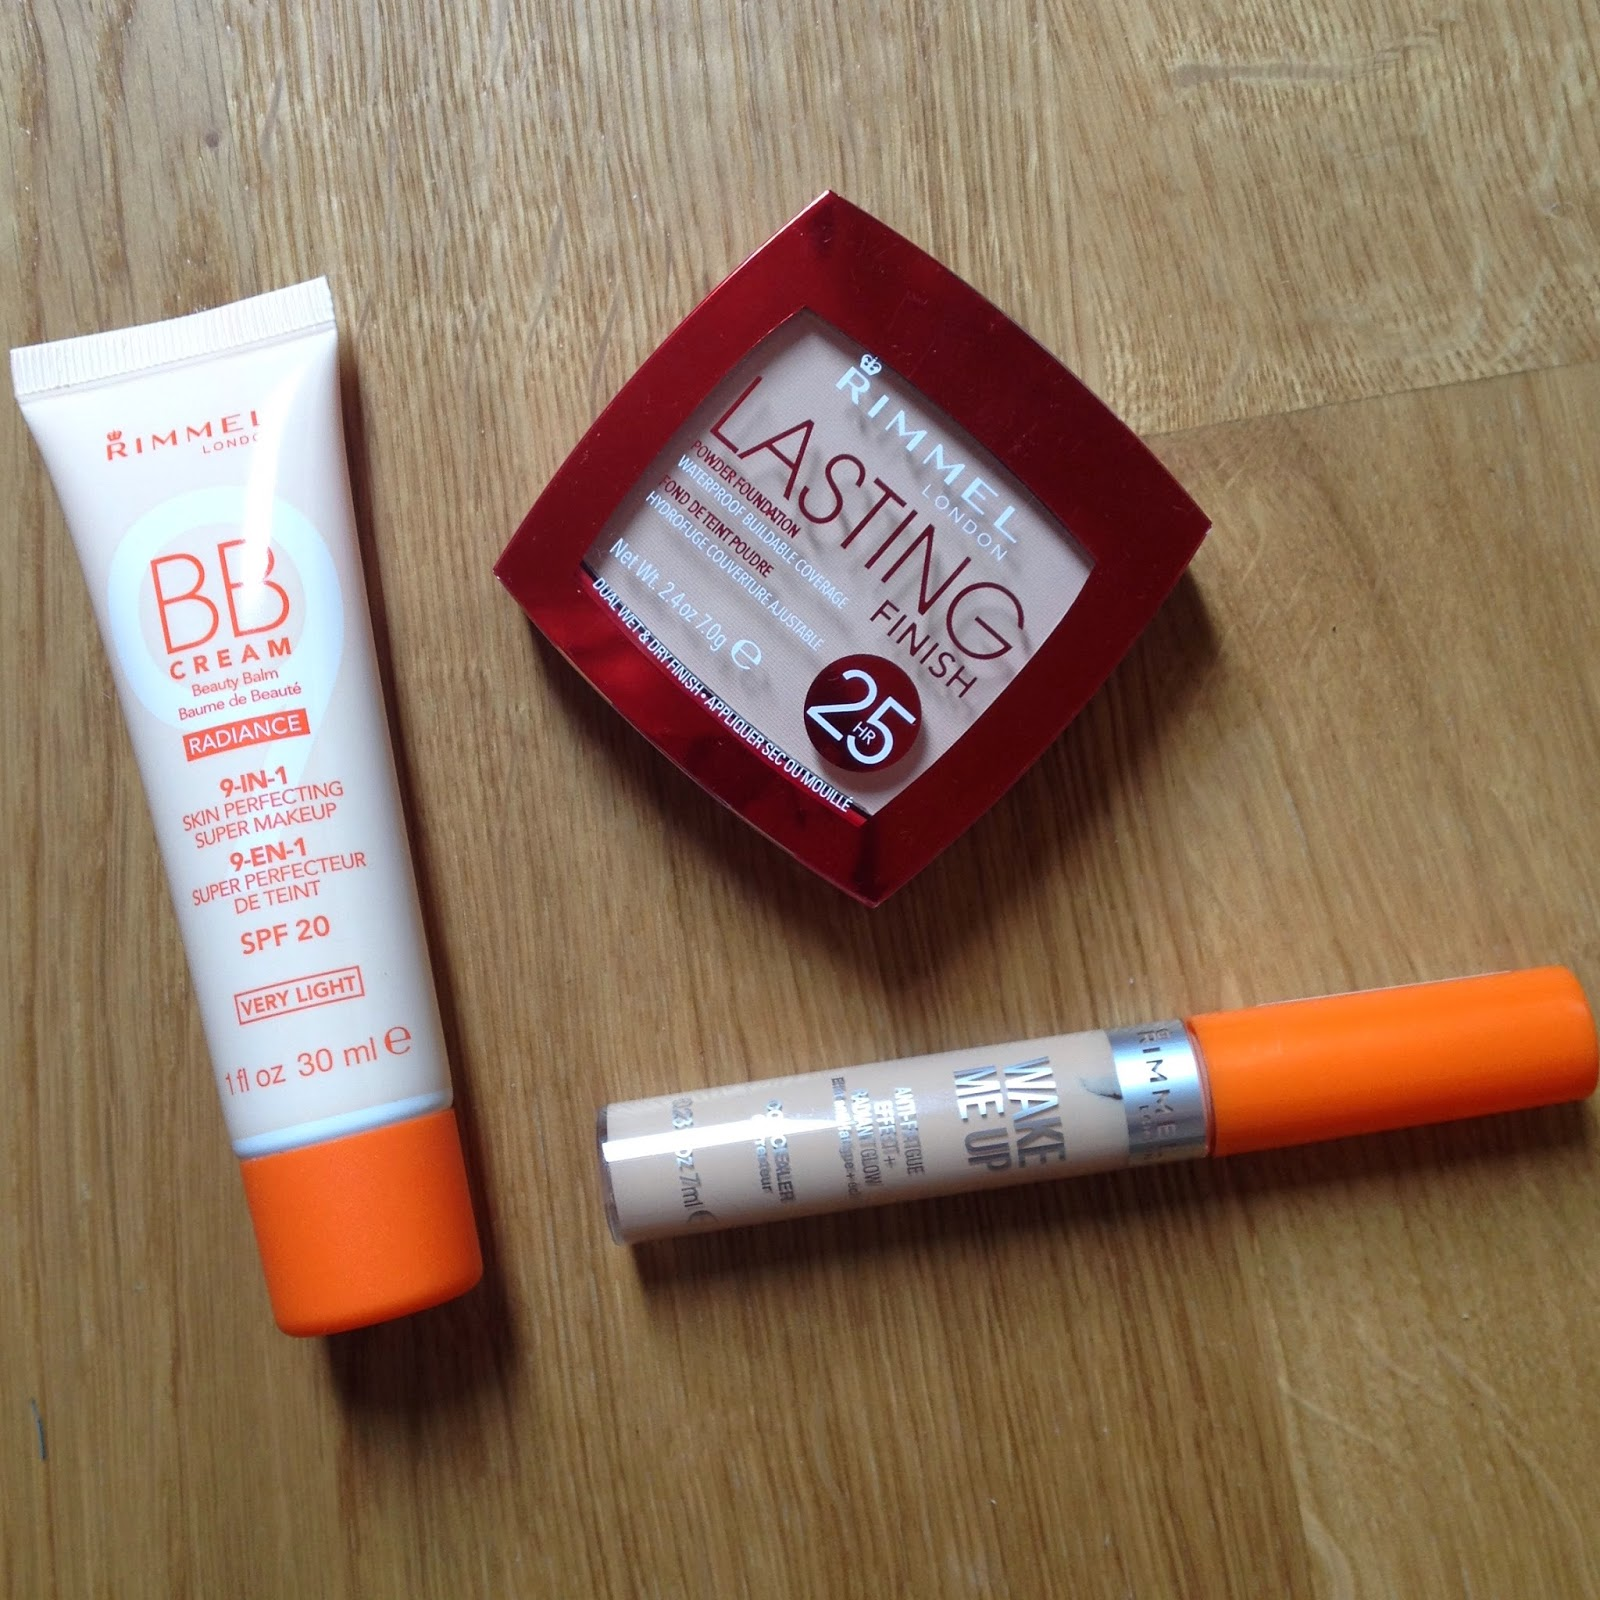 Rimmel Radiance BB Cream Rimmel Wake Me Up Concealer Rimmel Lasting Finish Powder